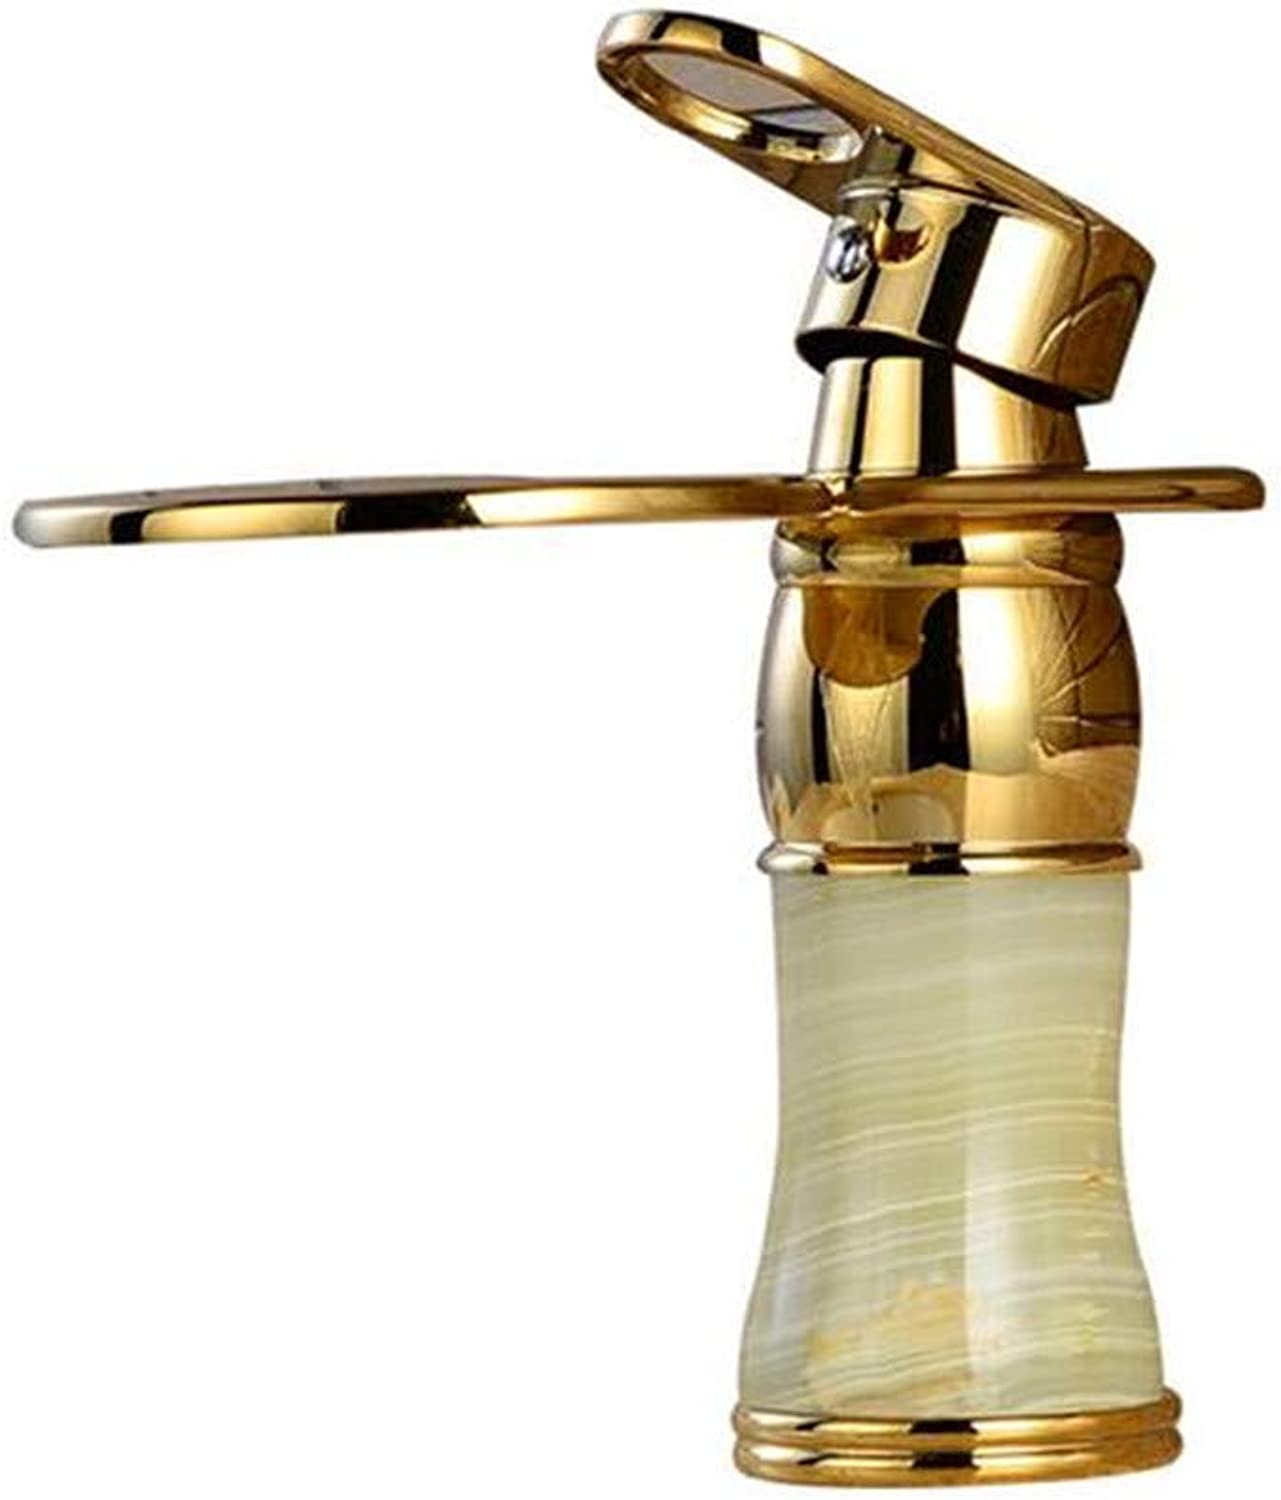 Basin Faucet Bathroom Sink Faucet All-Copper golden Waterfall Sink Faucet Hot and Cold Jade Sink Washbasin Faucet Antique Brass Faucet